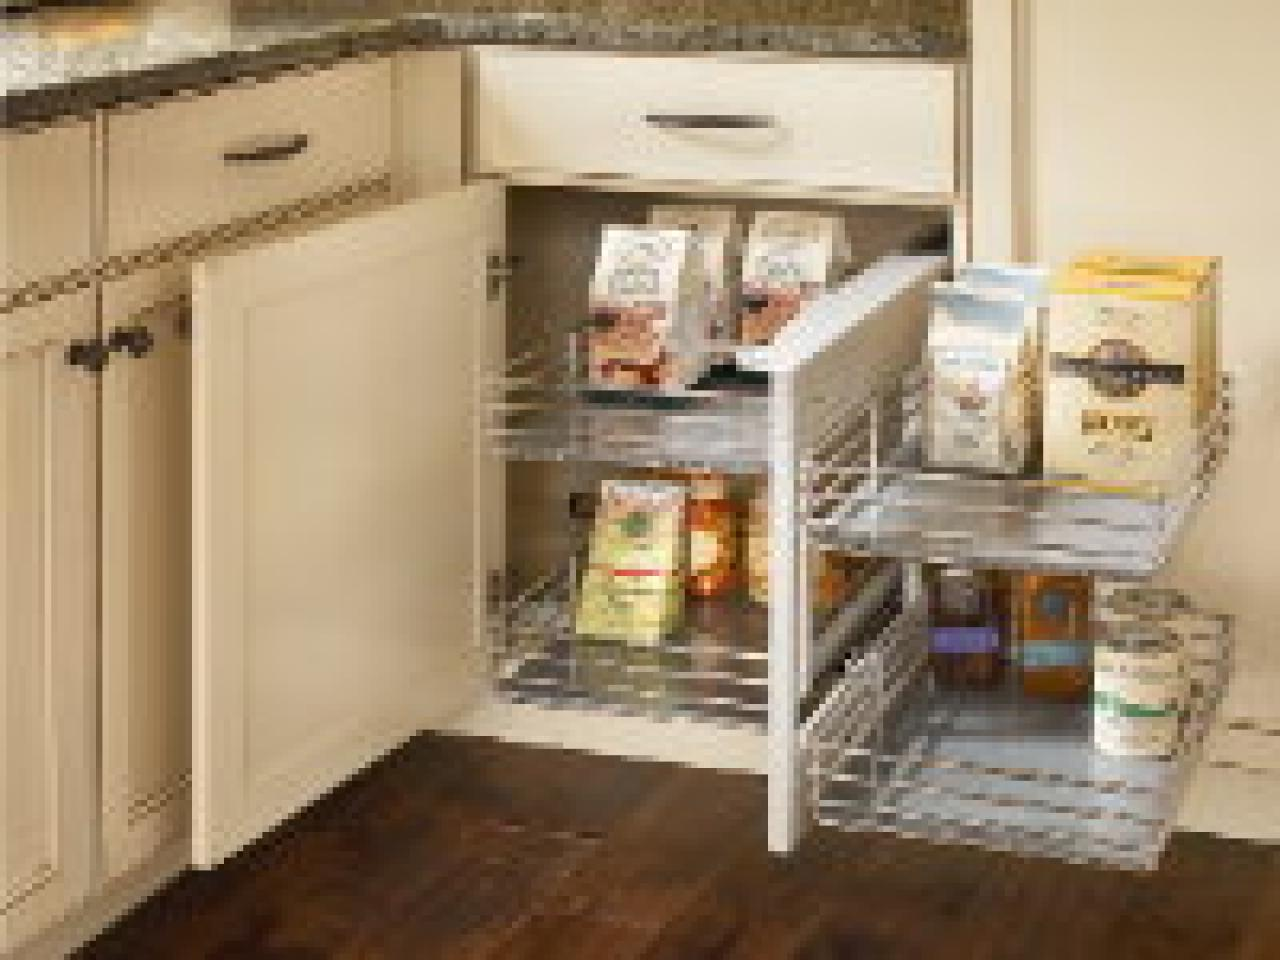 delightful What To Put In Kitchen Cabinets #6: upgrades_put_kitchen_cabinets_to_work_3